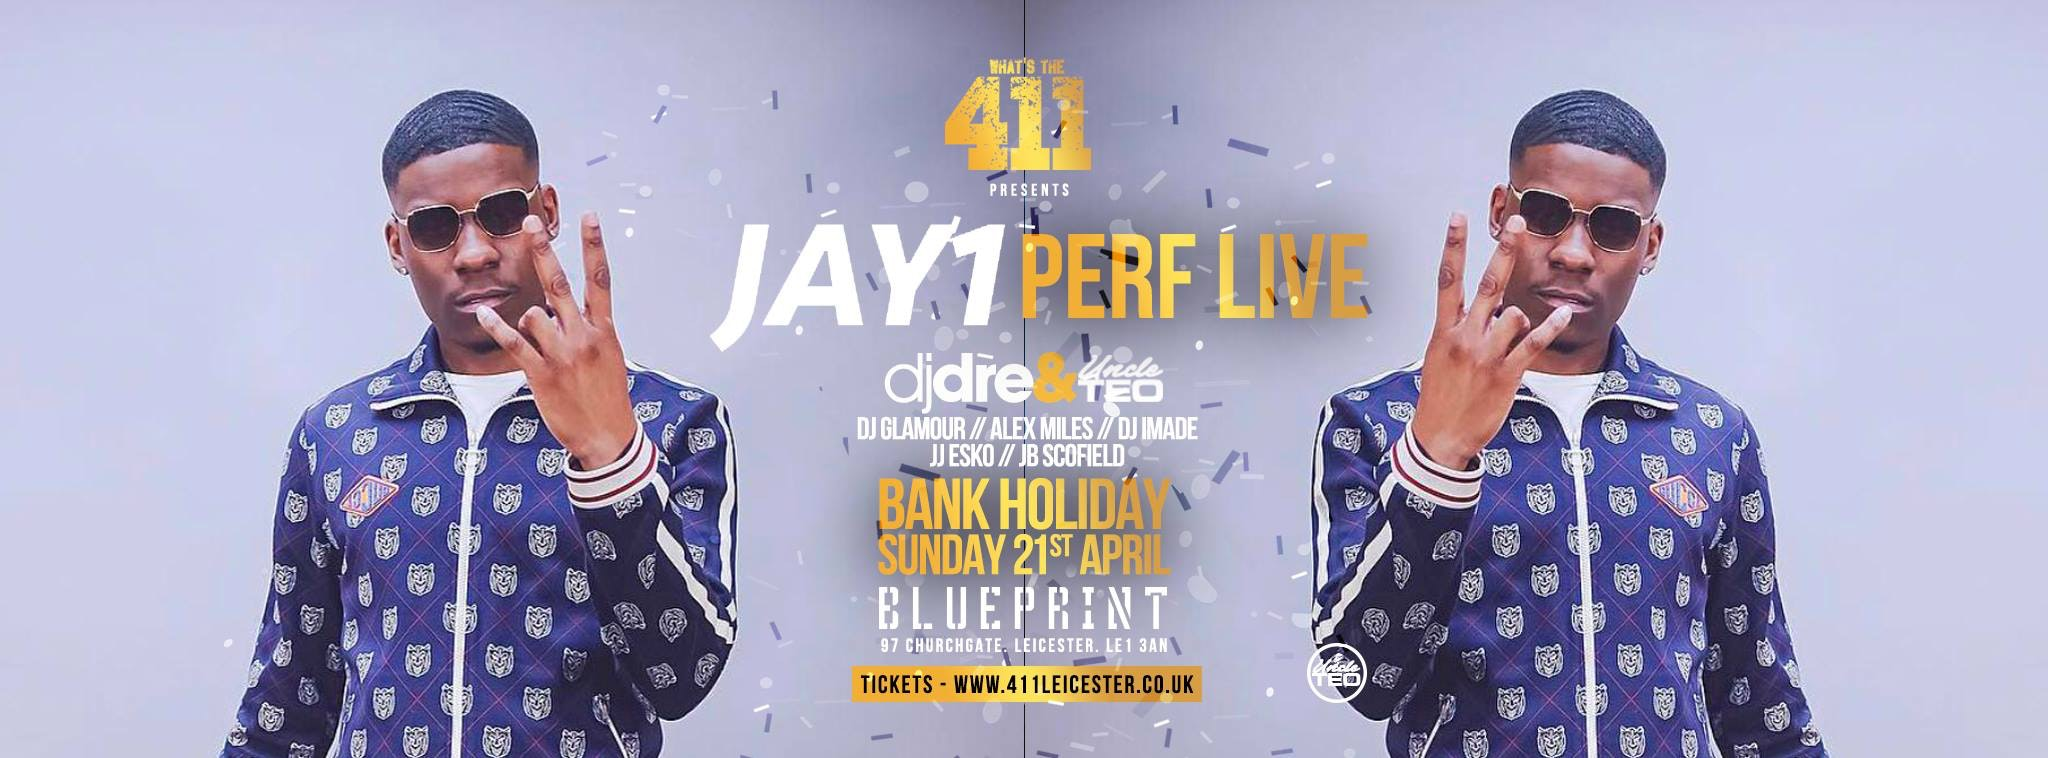 [Last 100 Tickets] JAY1 Perf Yours Mrs + Becky ★ Bank Holiday Sunday ★ Final Release Tickets On Sale Now! ★